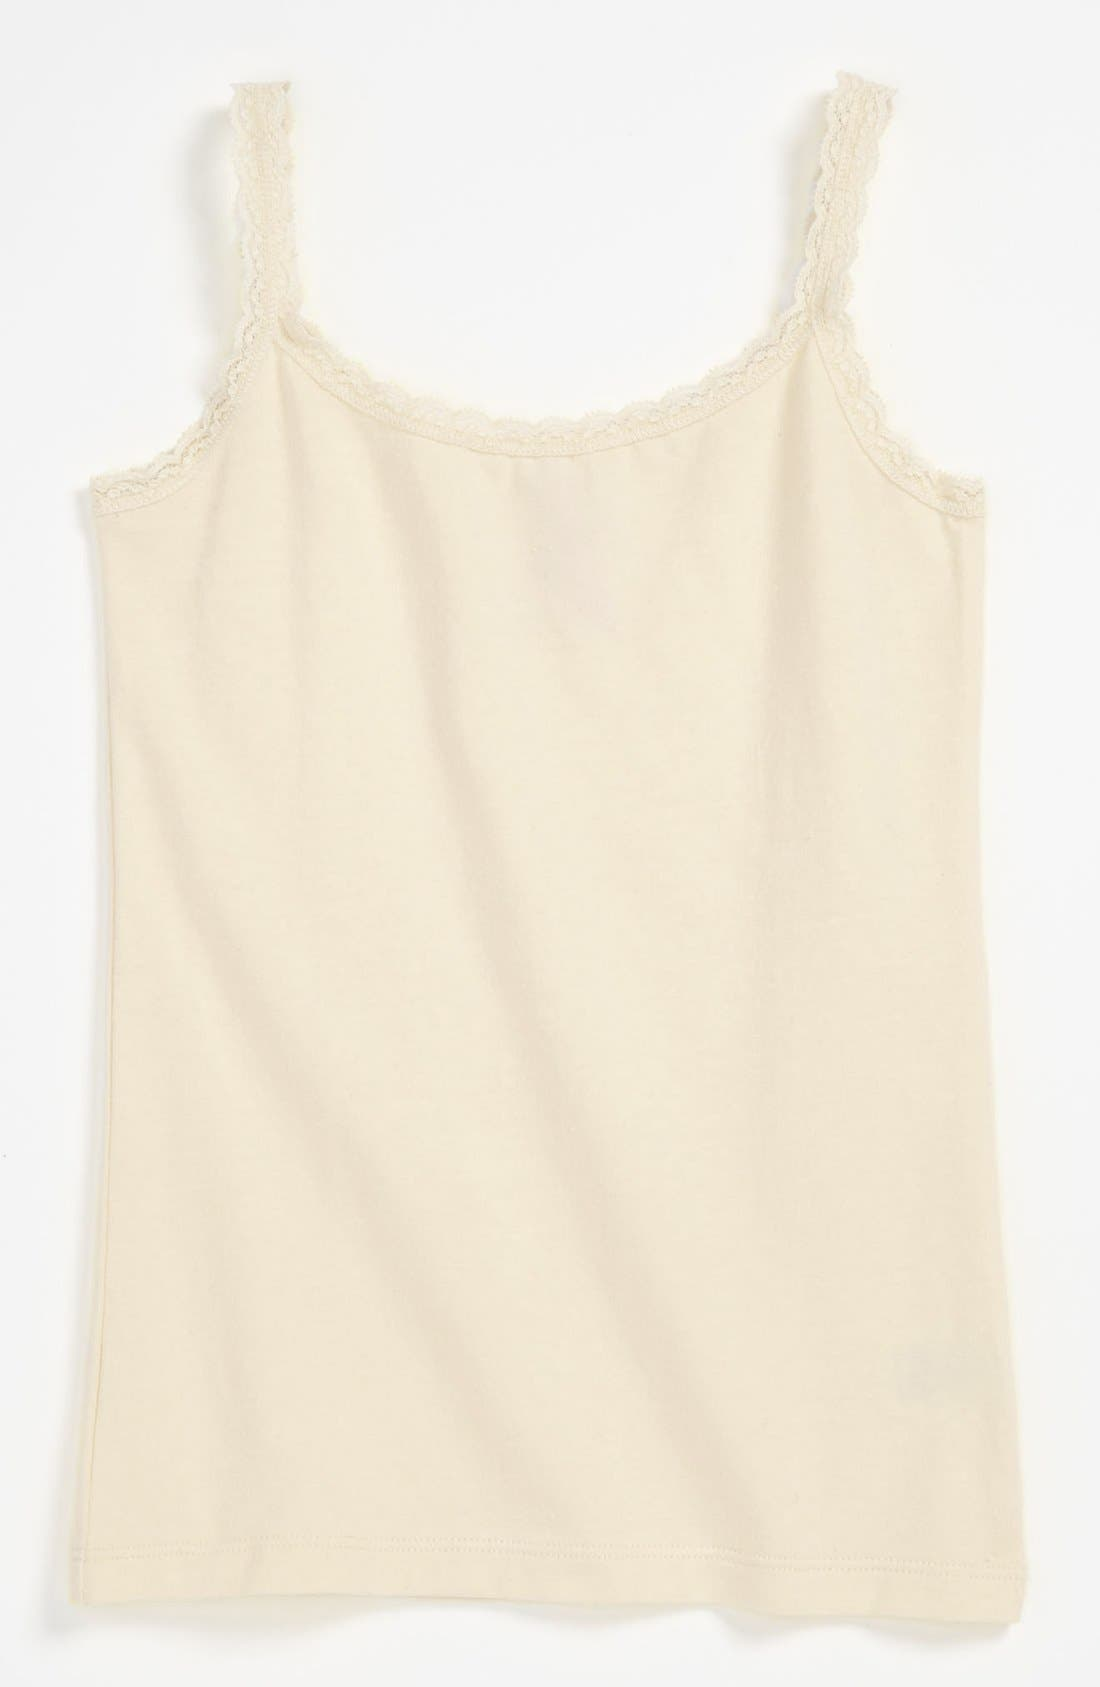 Main Image - Ruby & Bloom 'Rose' Tank Top (Little Girls)